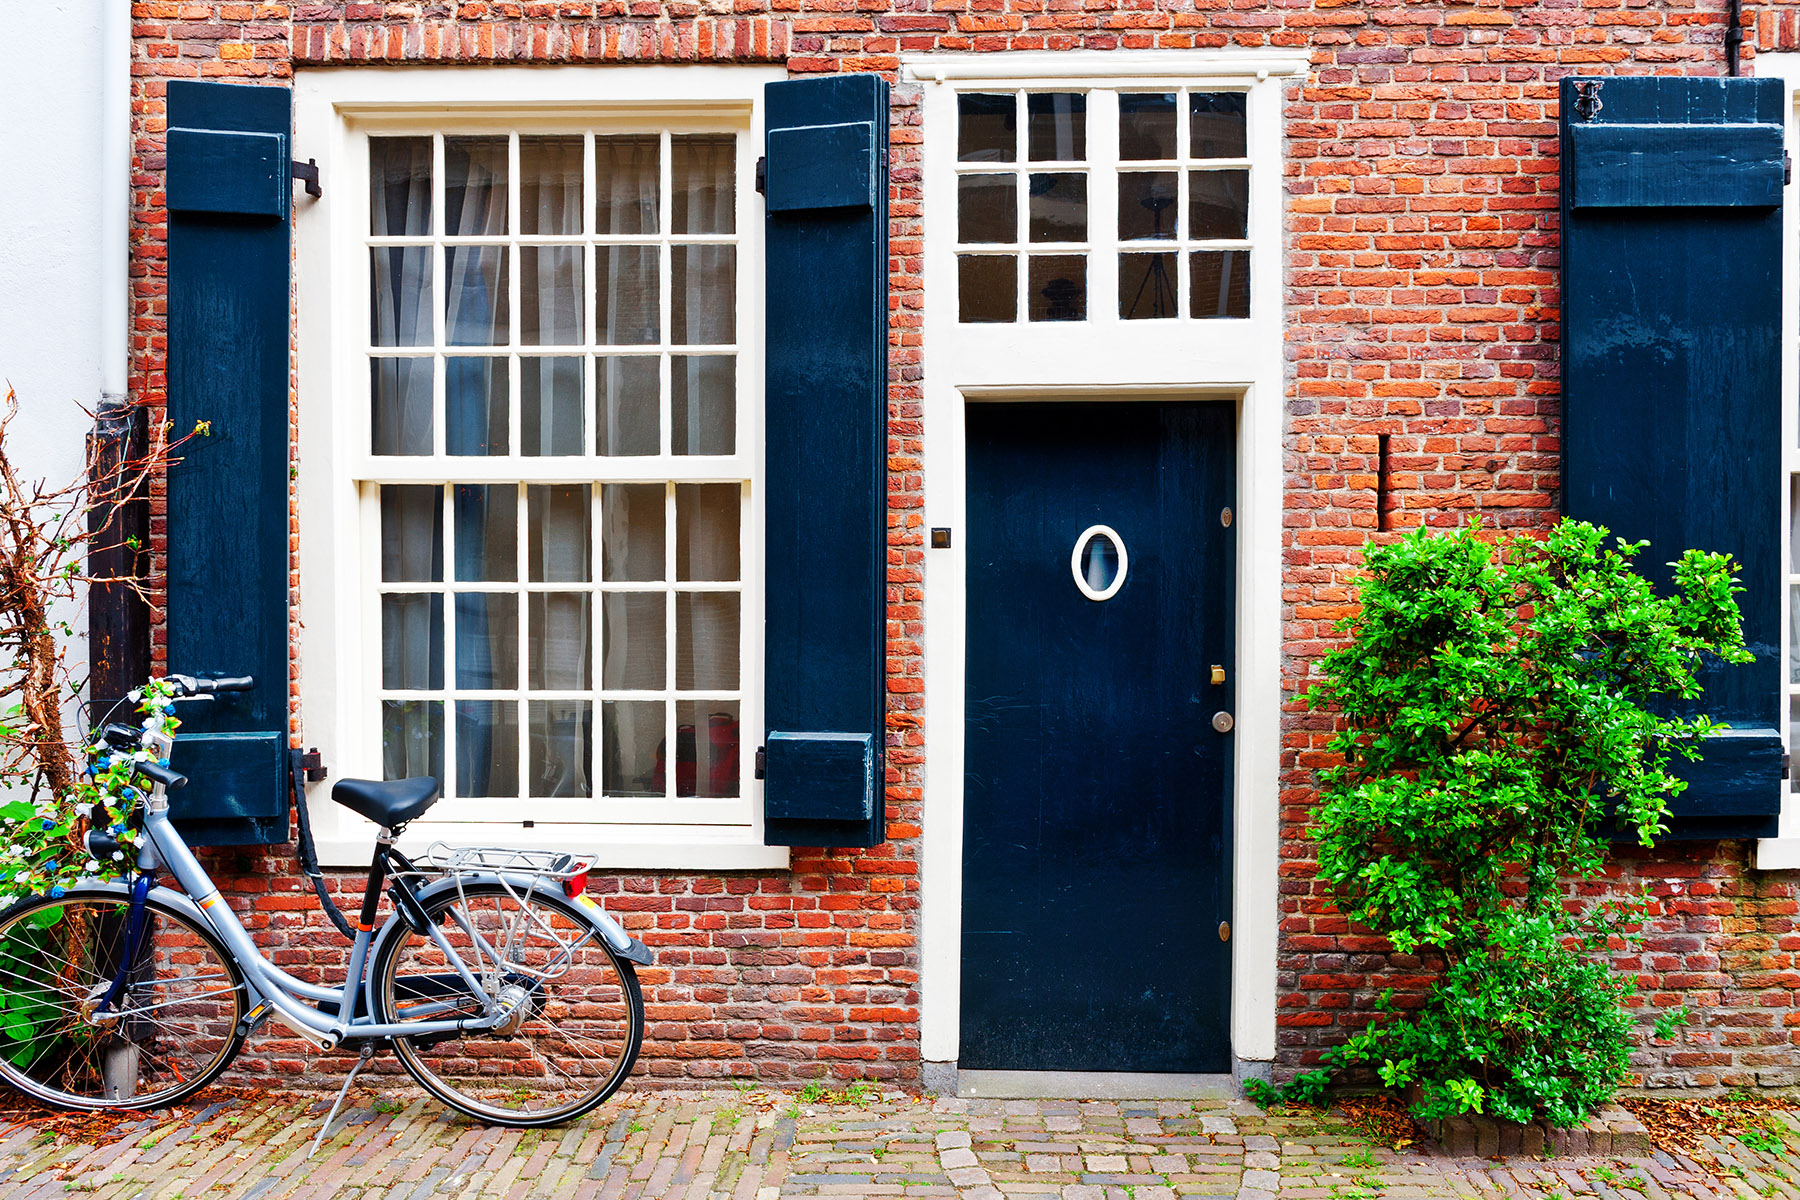 Mortgages in the Netherlands: rates and brokers